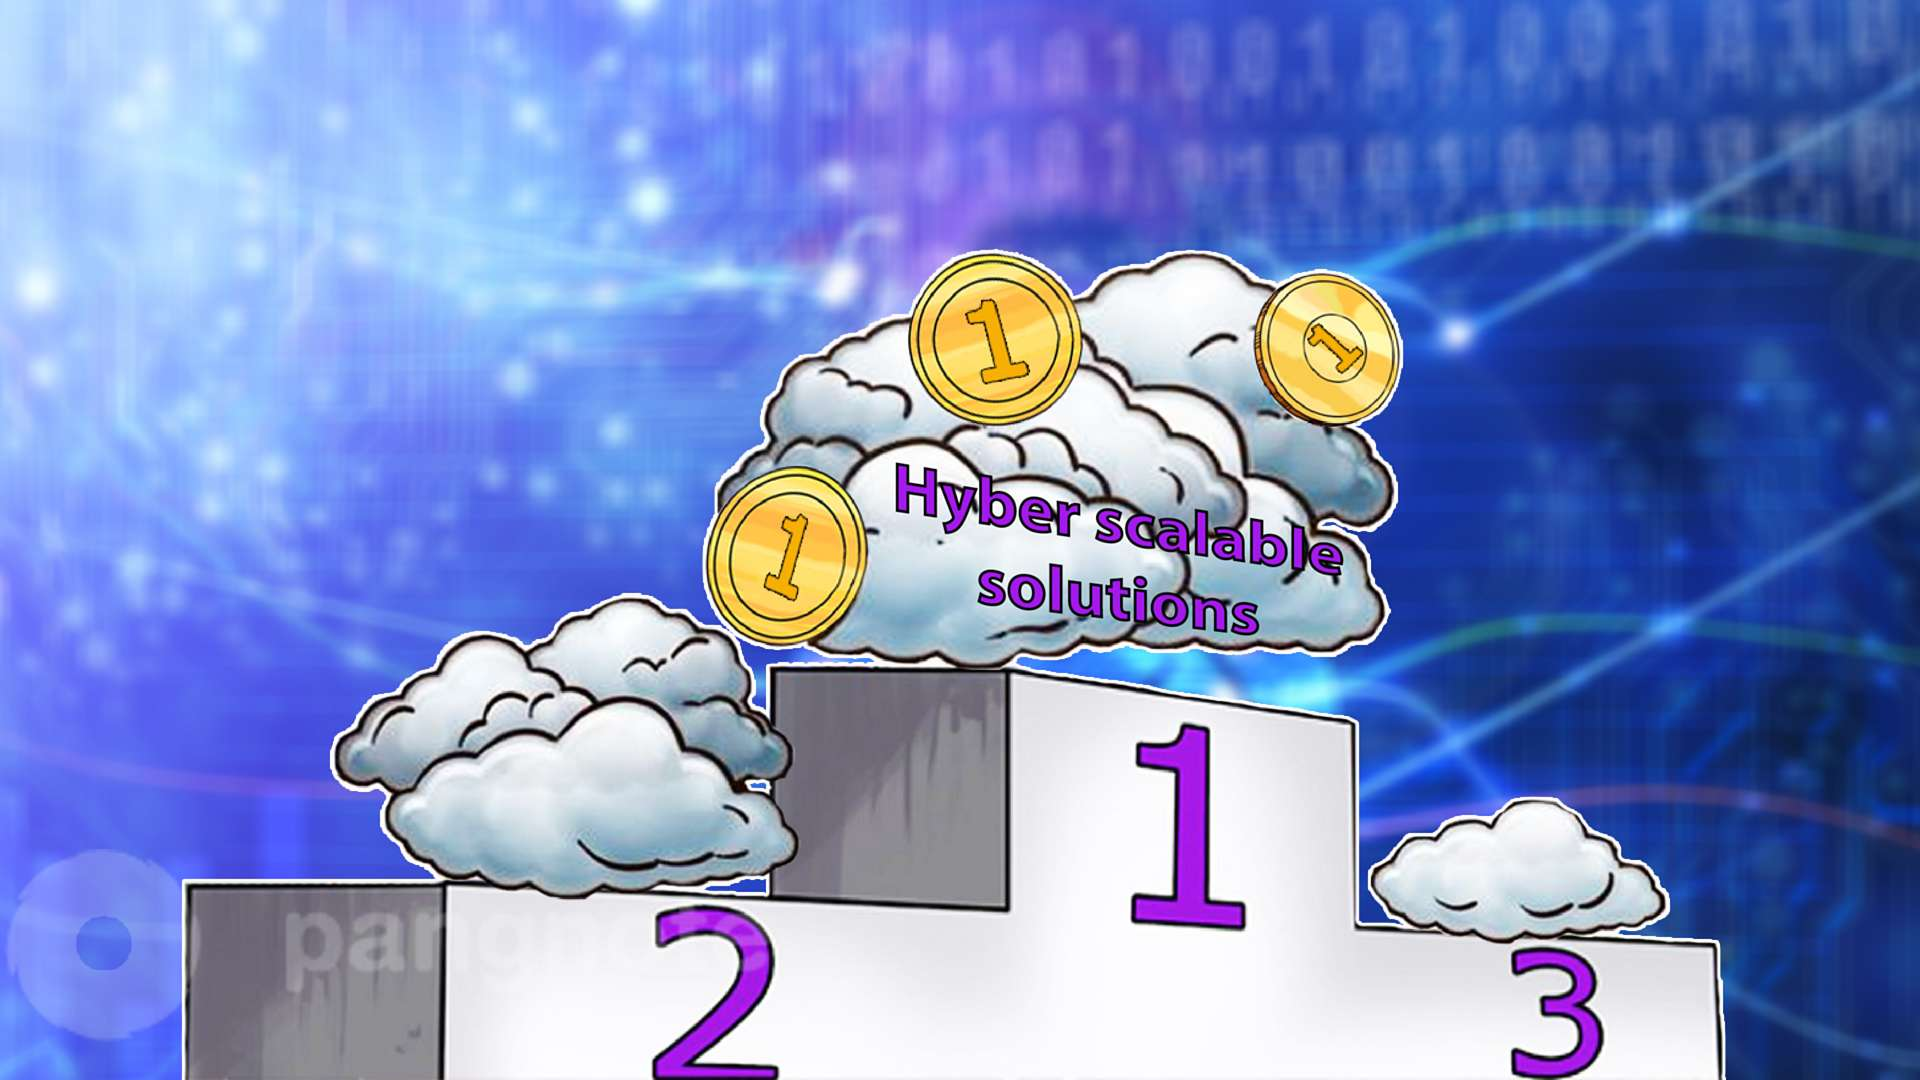 In the market of cloud services, the leaders are hyper scalable solutions